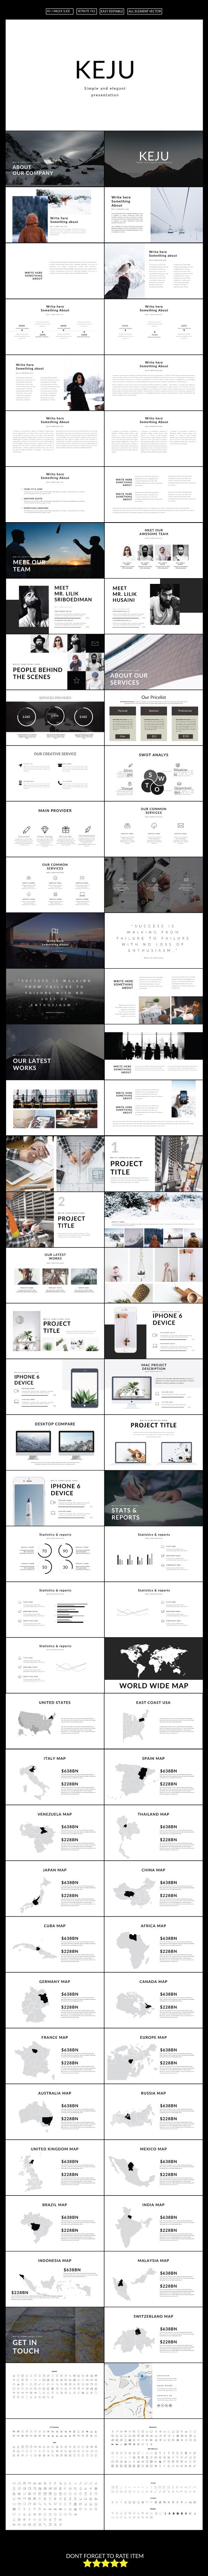 Keju Multipurpose Keynote Presentation Template